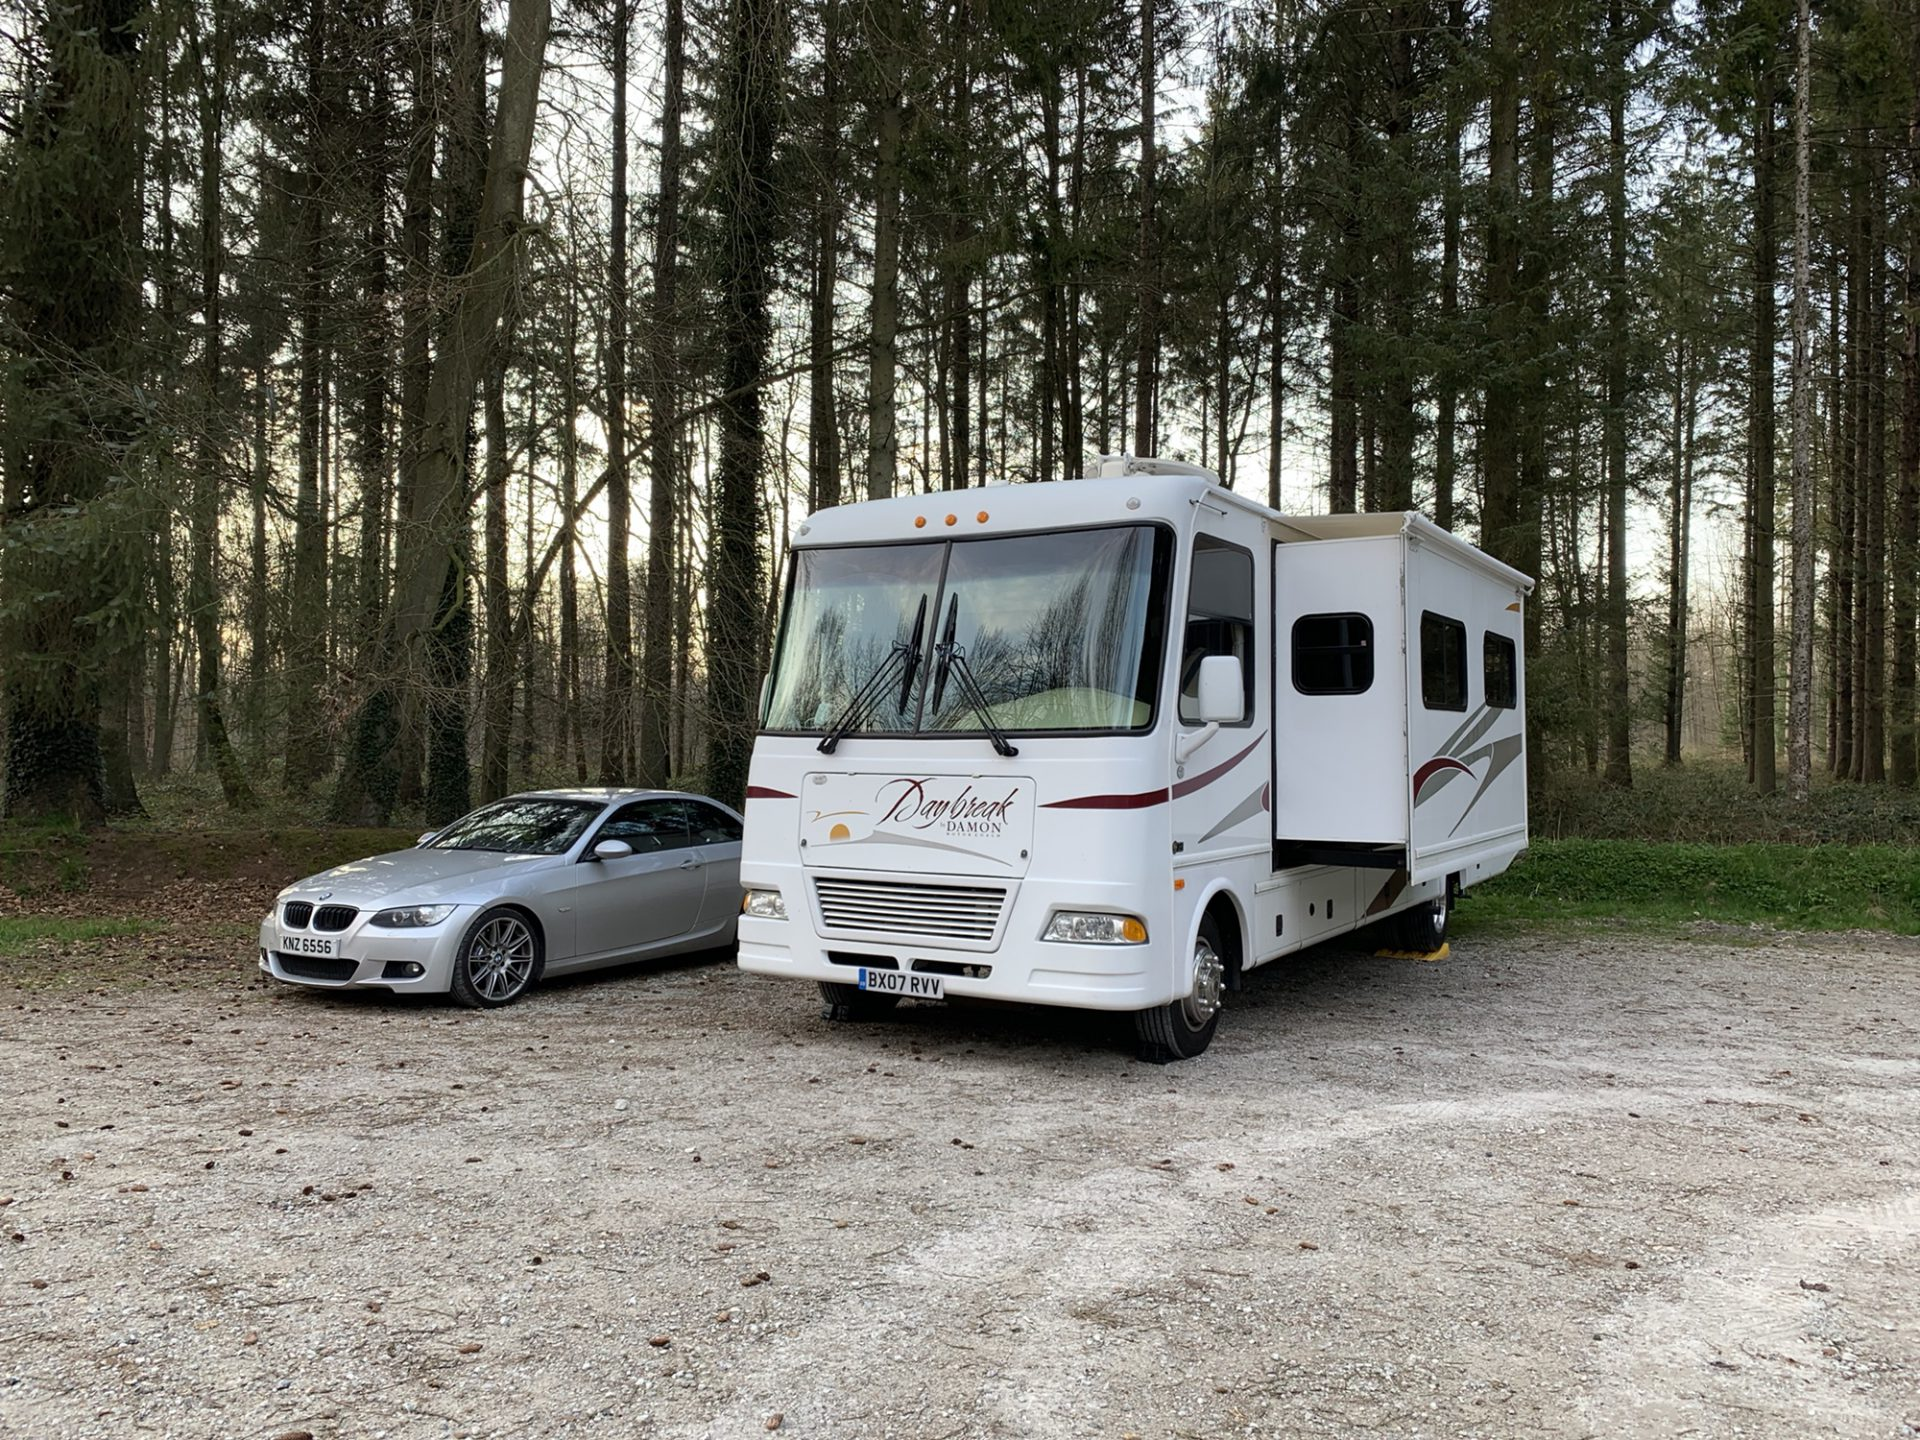 Our RV and our BMW parked in a gravel car park